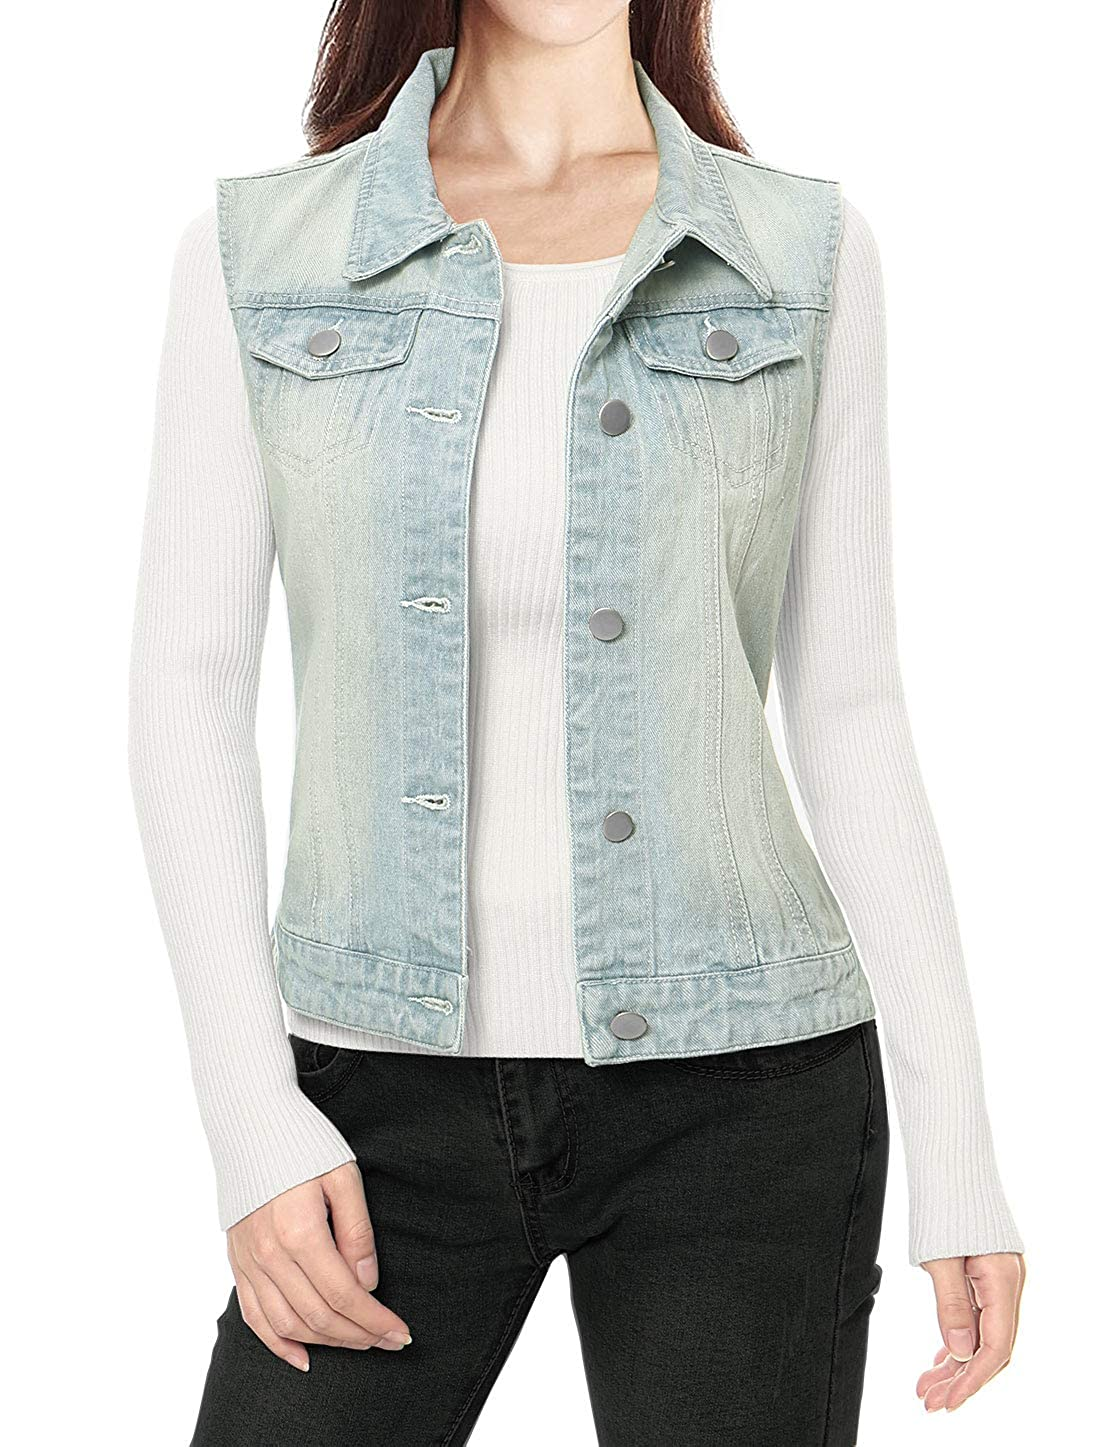 Allegra K Women's Buttoned Washed Denim Vest Jacket w Chest Flap Pockets s18040800it0246